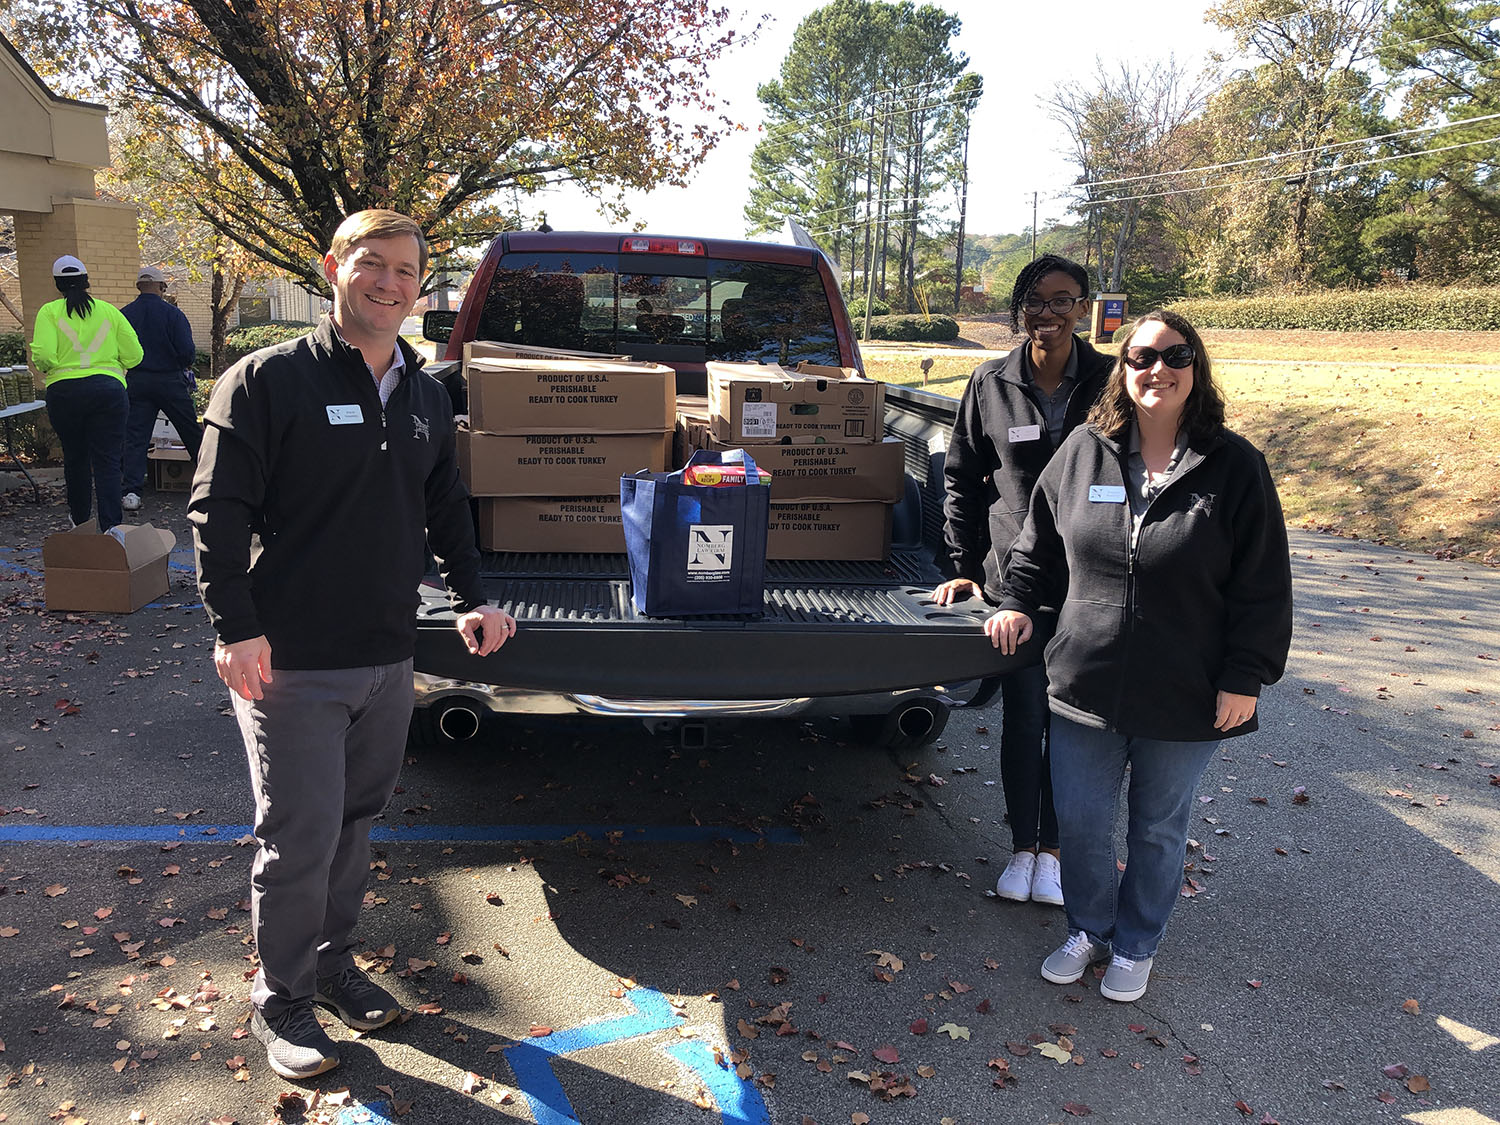 photo of birmingham al attorney david nomberg involved in a community oriented charitable act